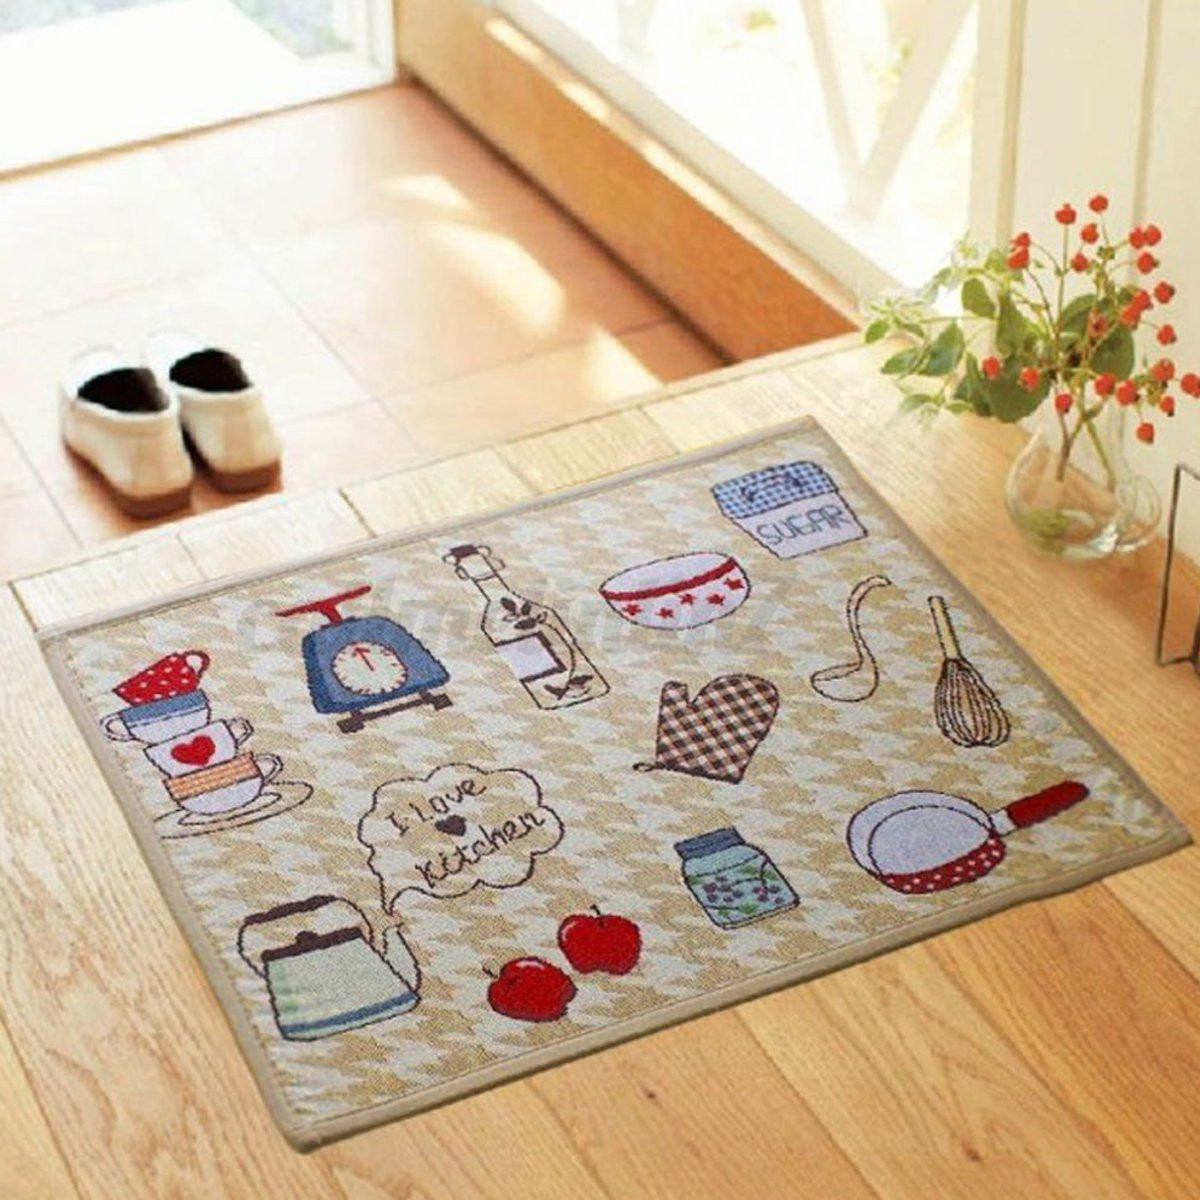 235cm Jacquard Non Slip Rug Kitchen Bedroom Floor Mats Hallway Carpet Washable Ebay